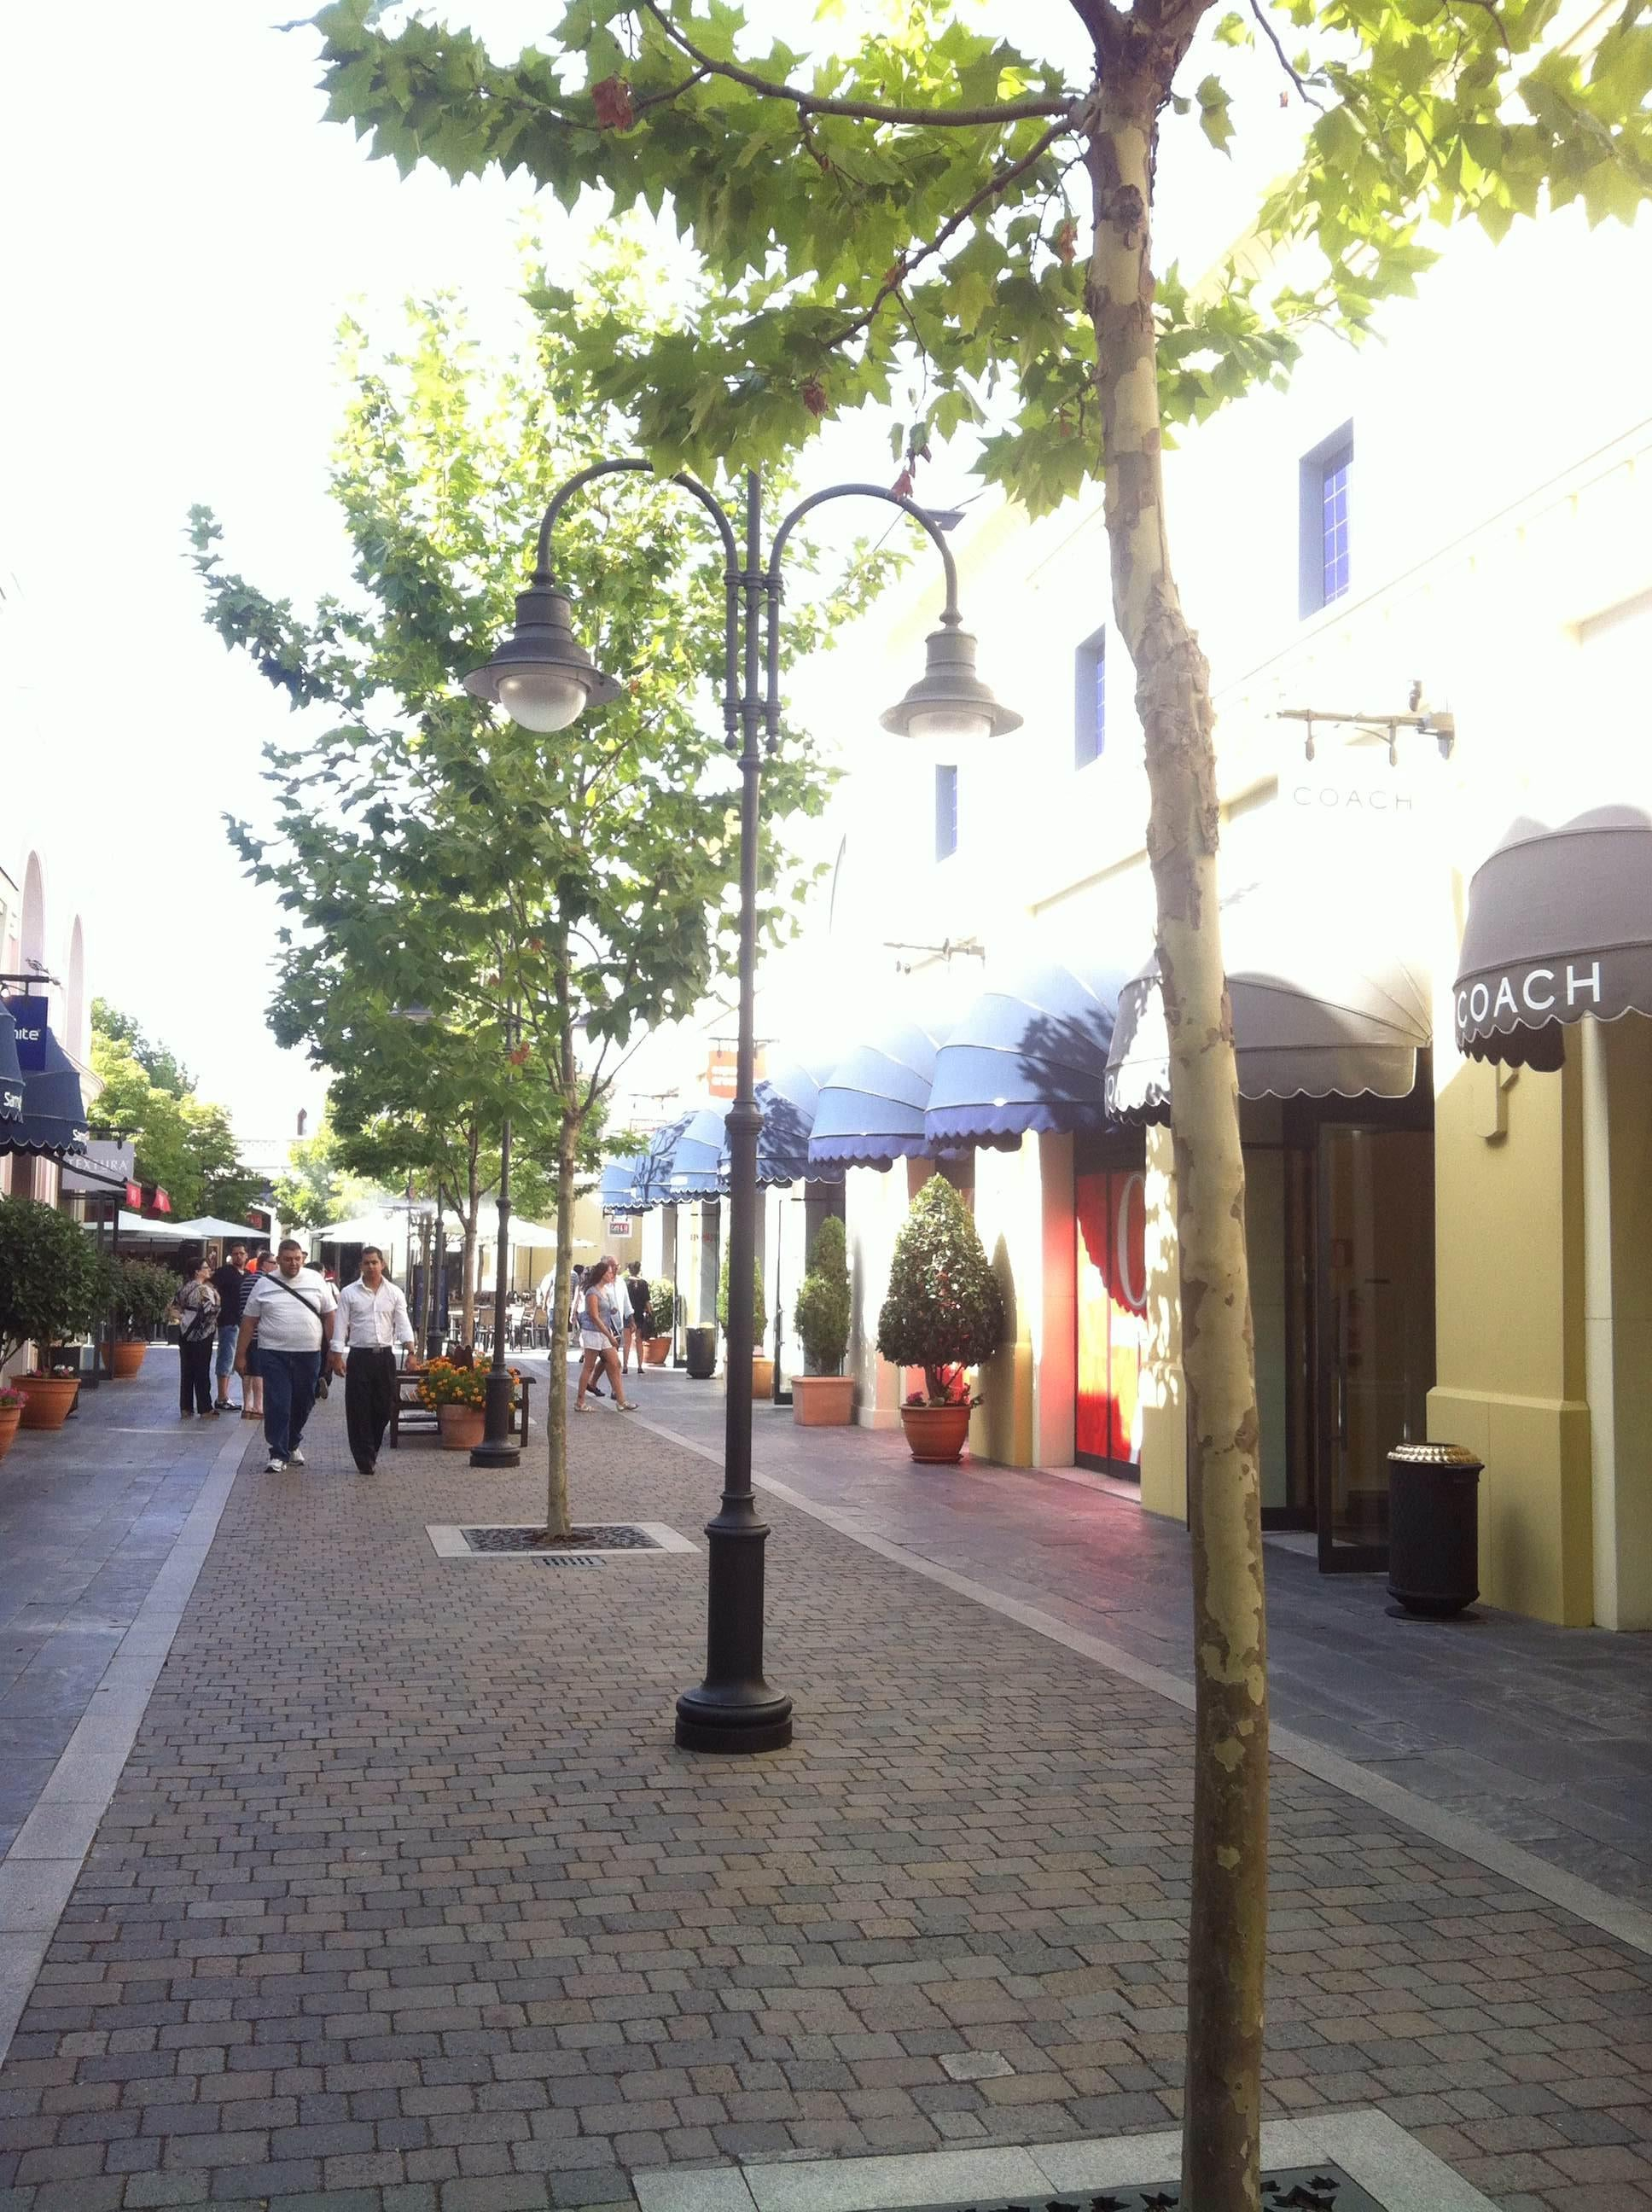 Paseo en Las Rozas Village outlet shopping